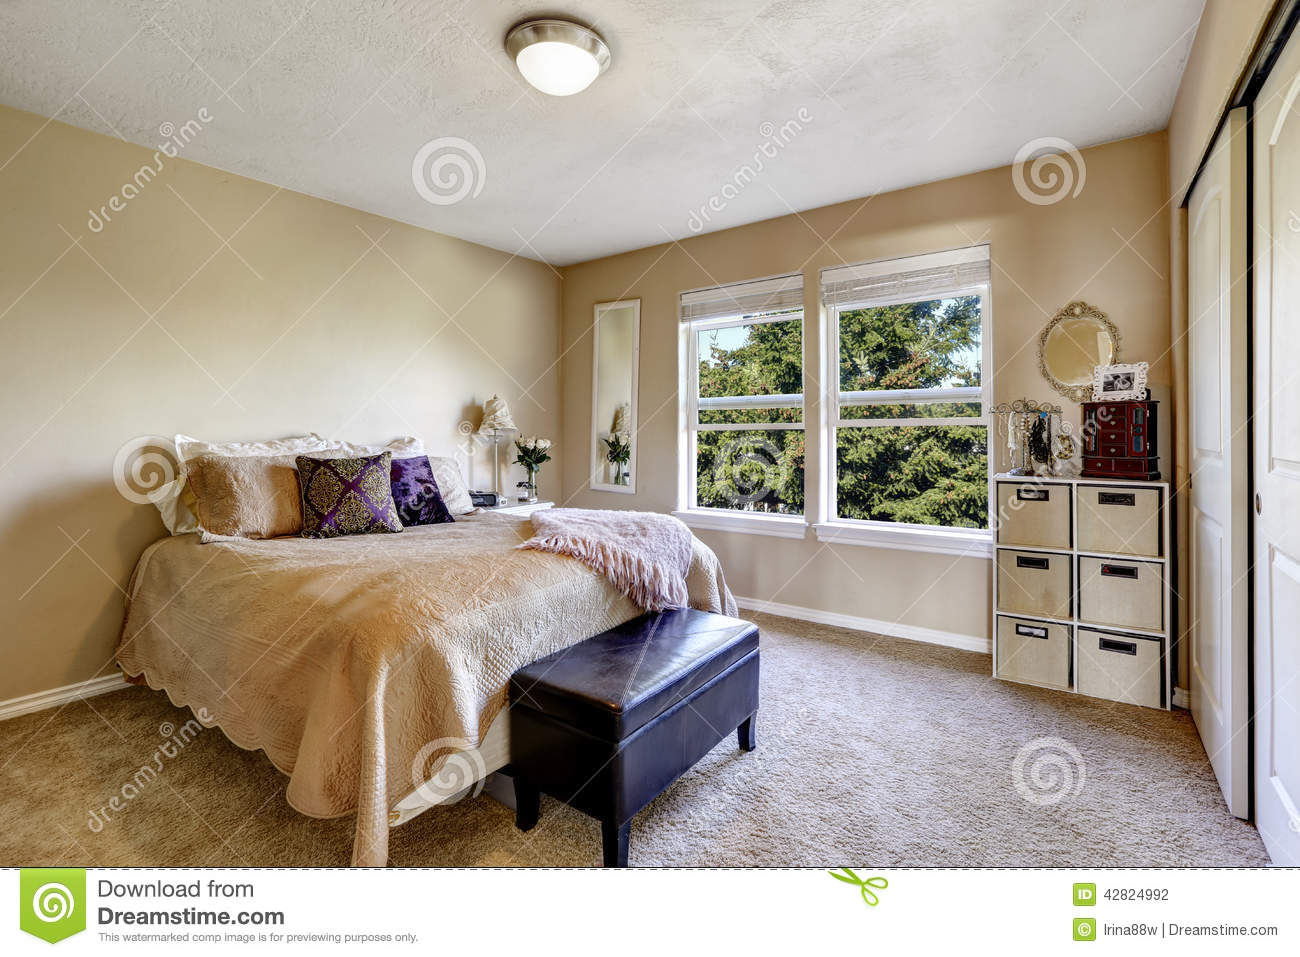 Simple bedroom interior with bed and ottoman stock photo image of free image 42824992 - Image of simple bedroom ...